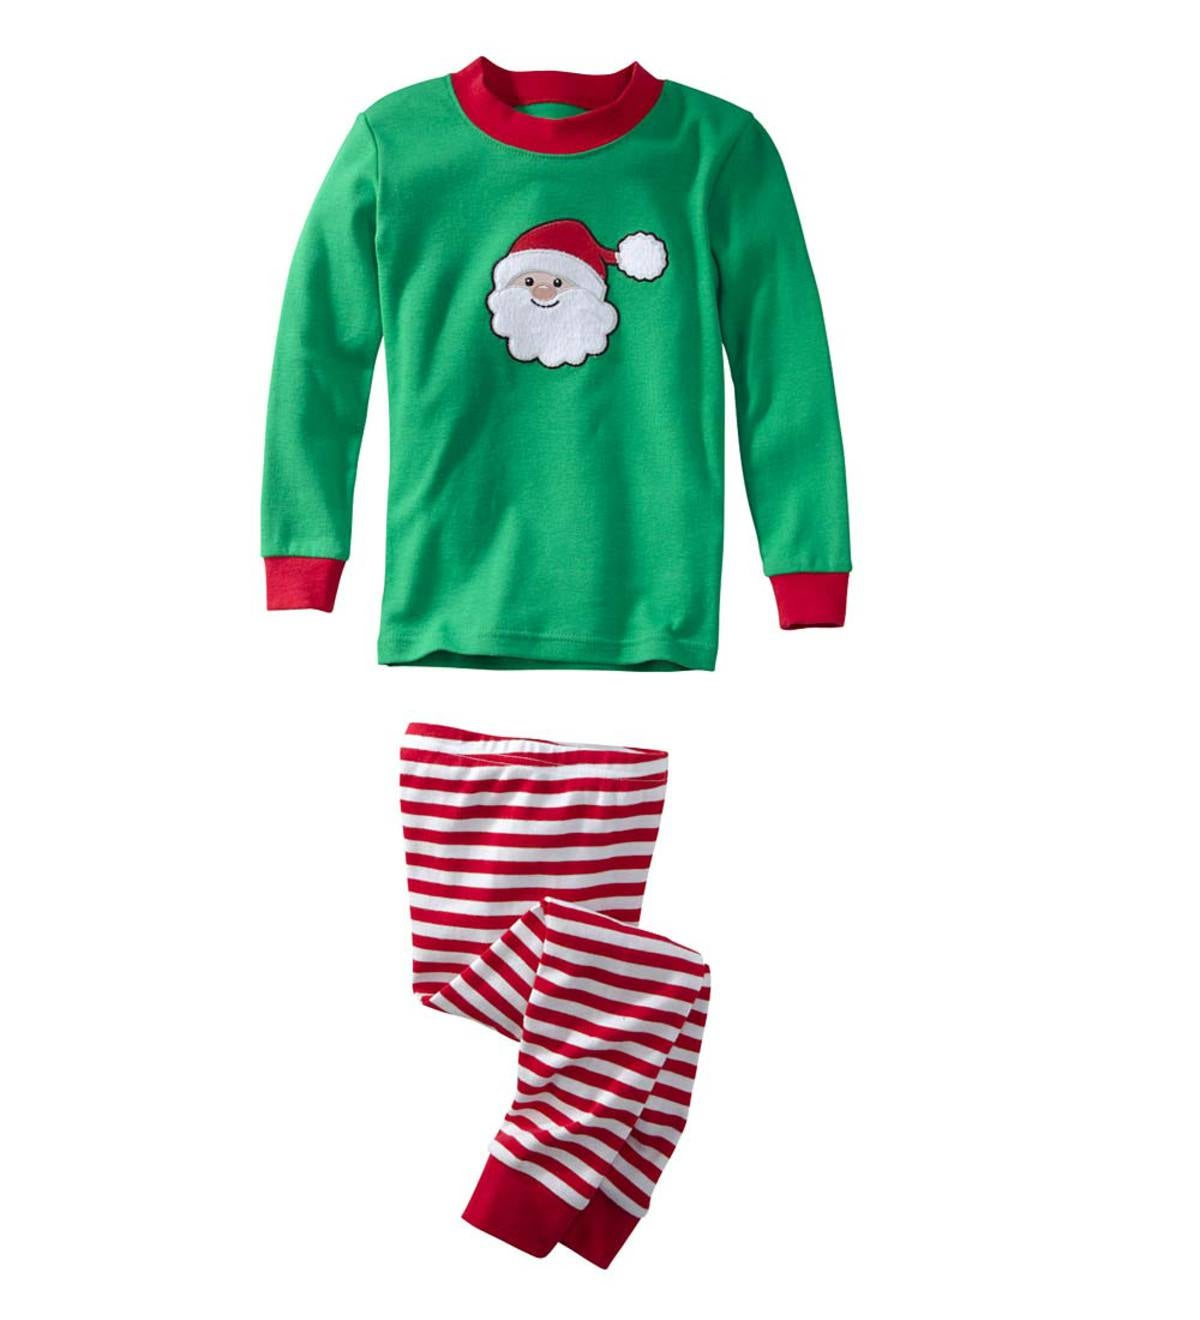 Personalized Santa Pajamas - Green - 5